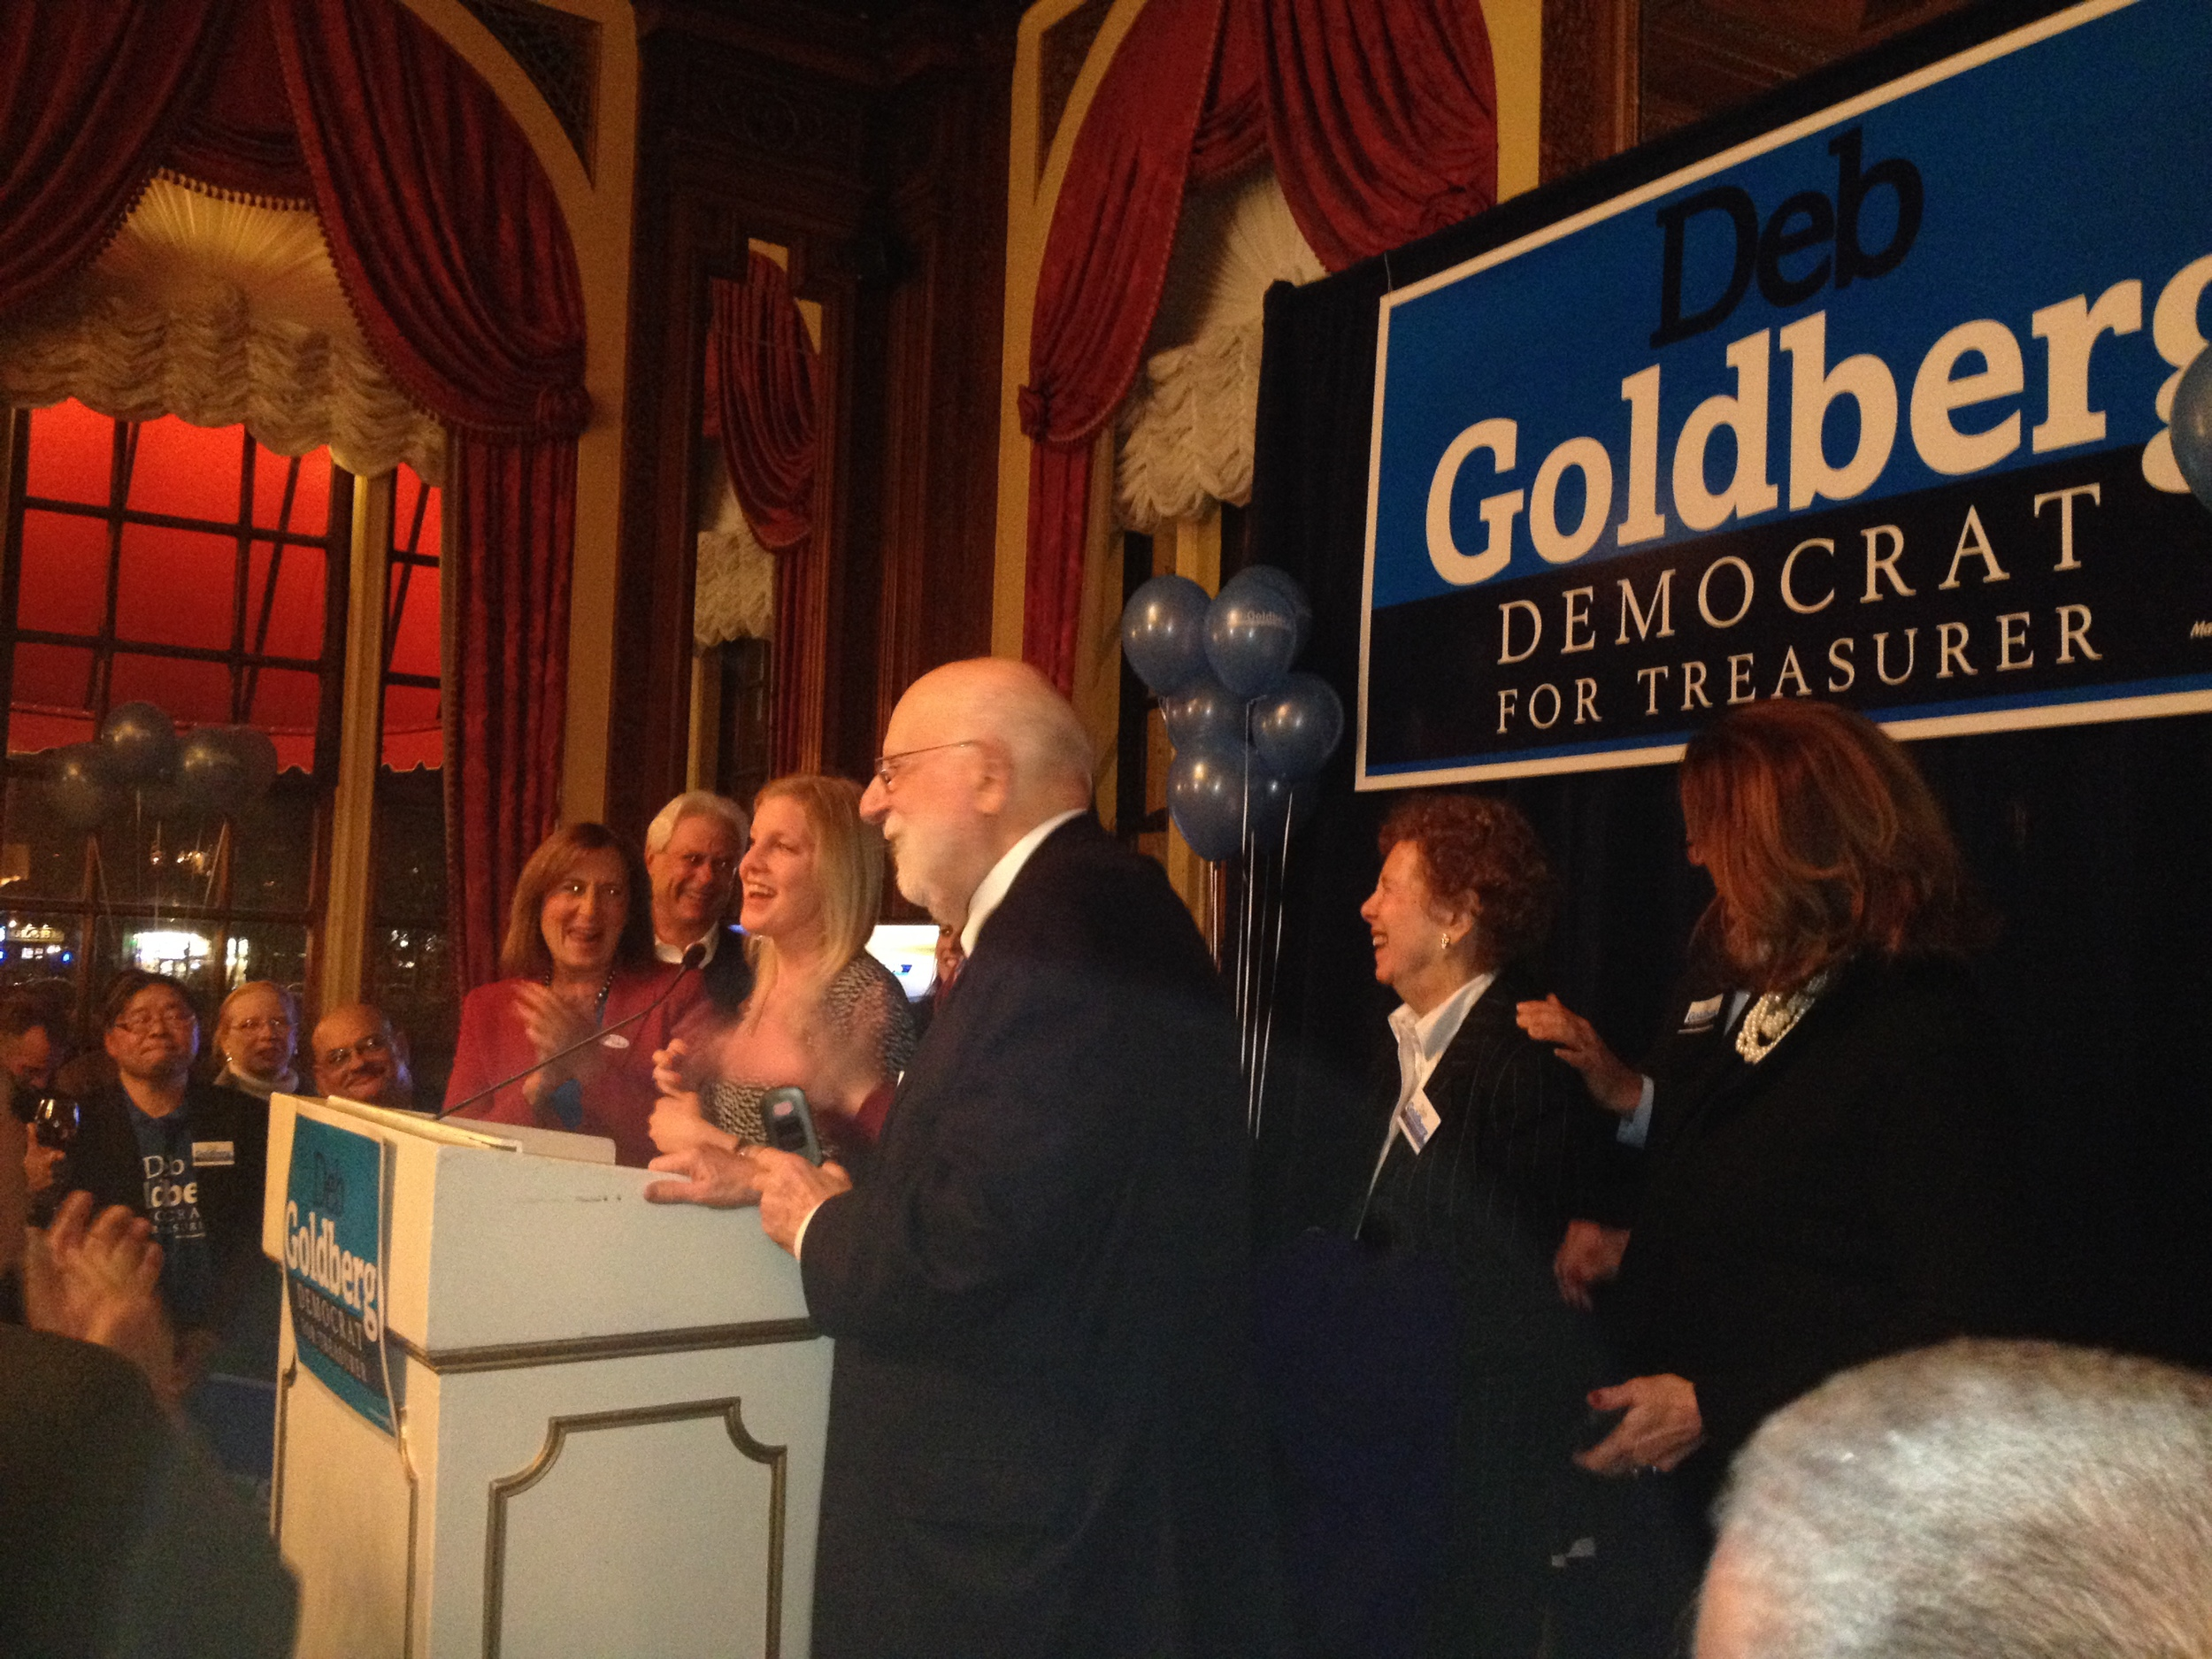 Celebrating the Election of State Treasurer Deb Goldberg